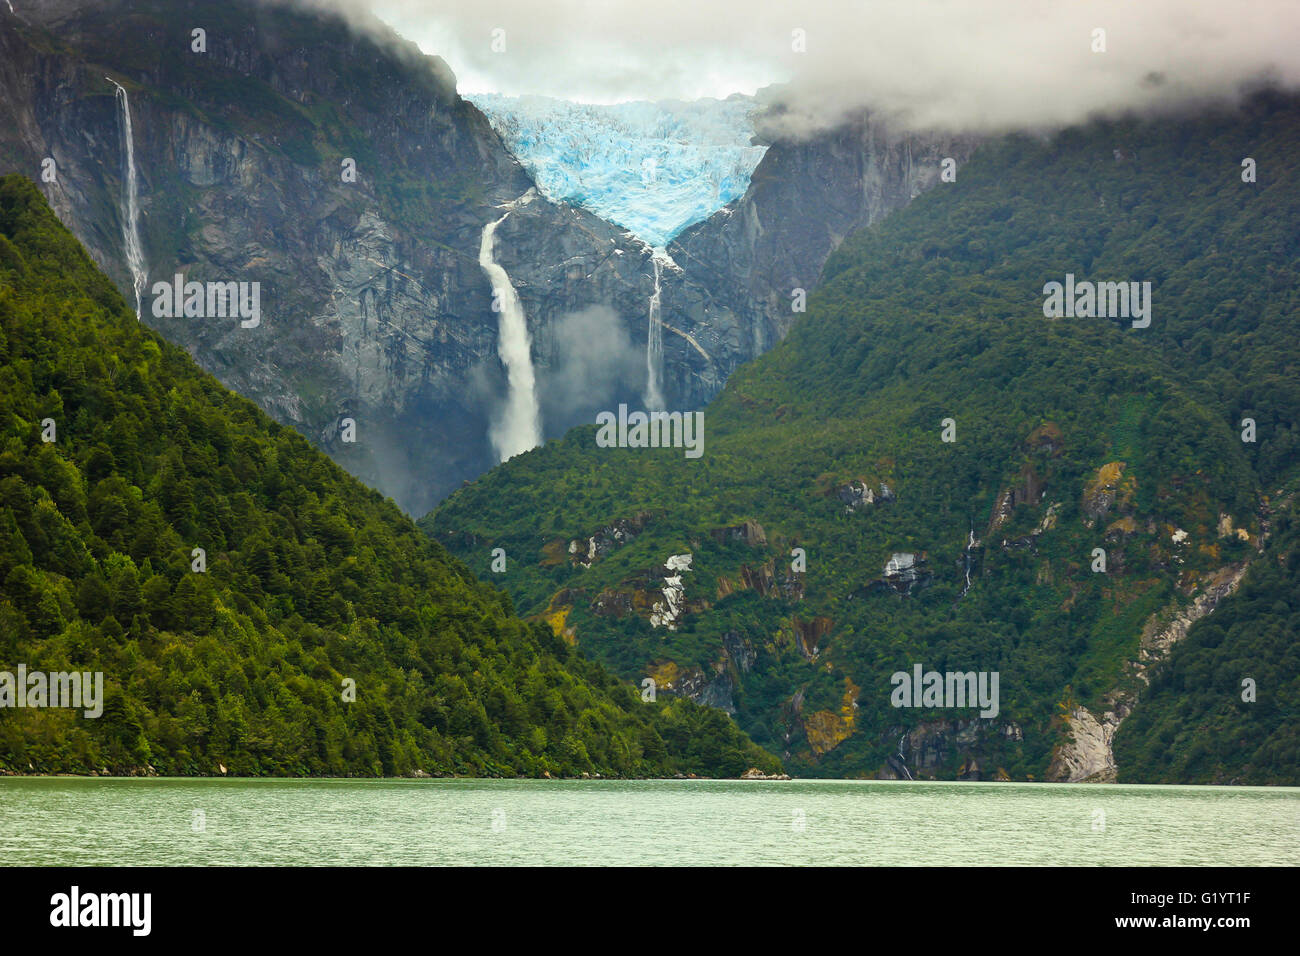 scenic view on glacier ventisquero calgante with waterfall and lake in chilean patagonia on the road Carretera austral - Stock Image